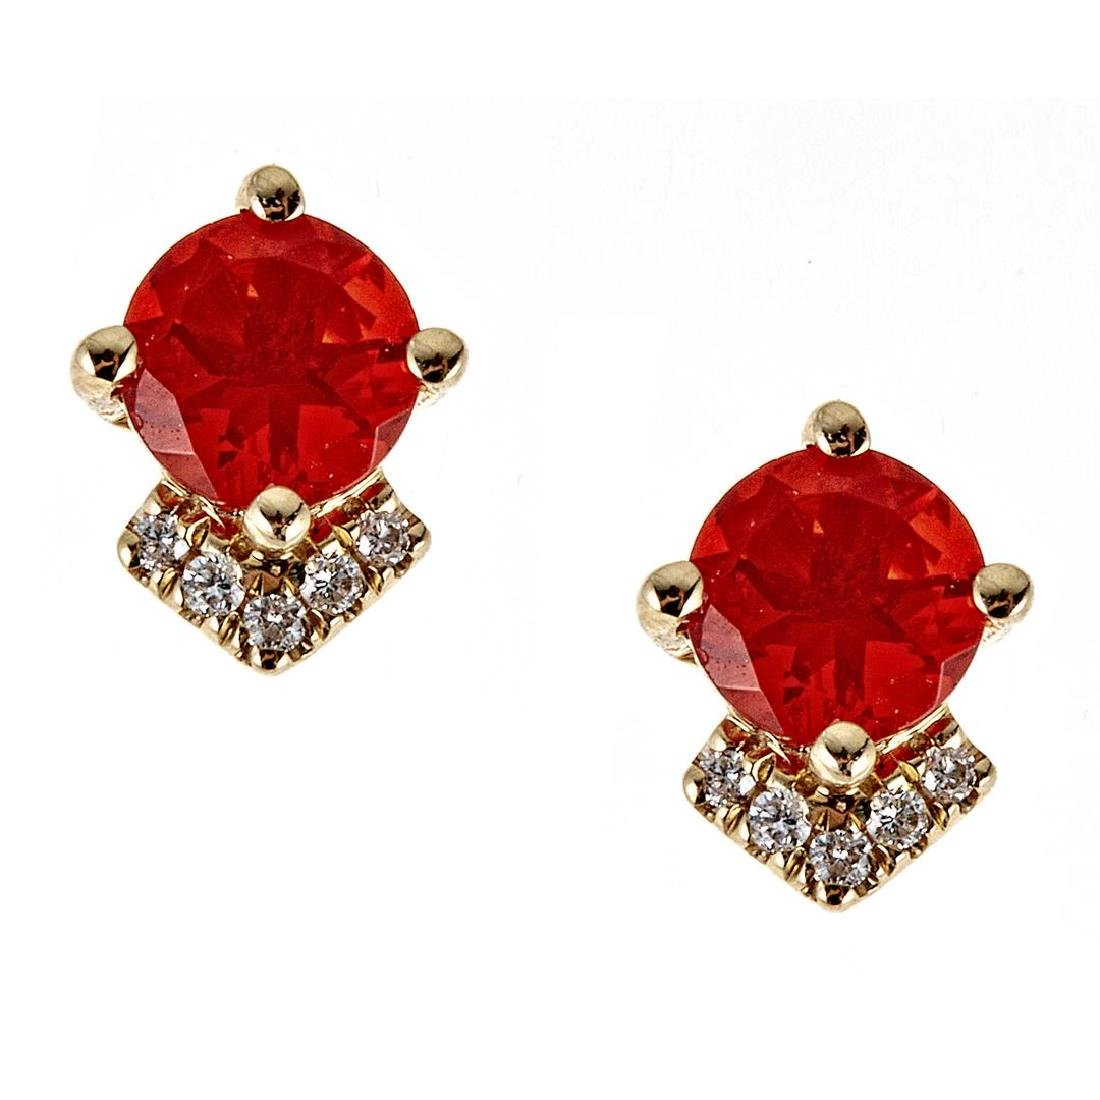 0.76 ctw Fire Opal and Diamond Earrings - 14KT Yellow